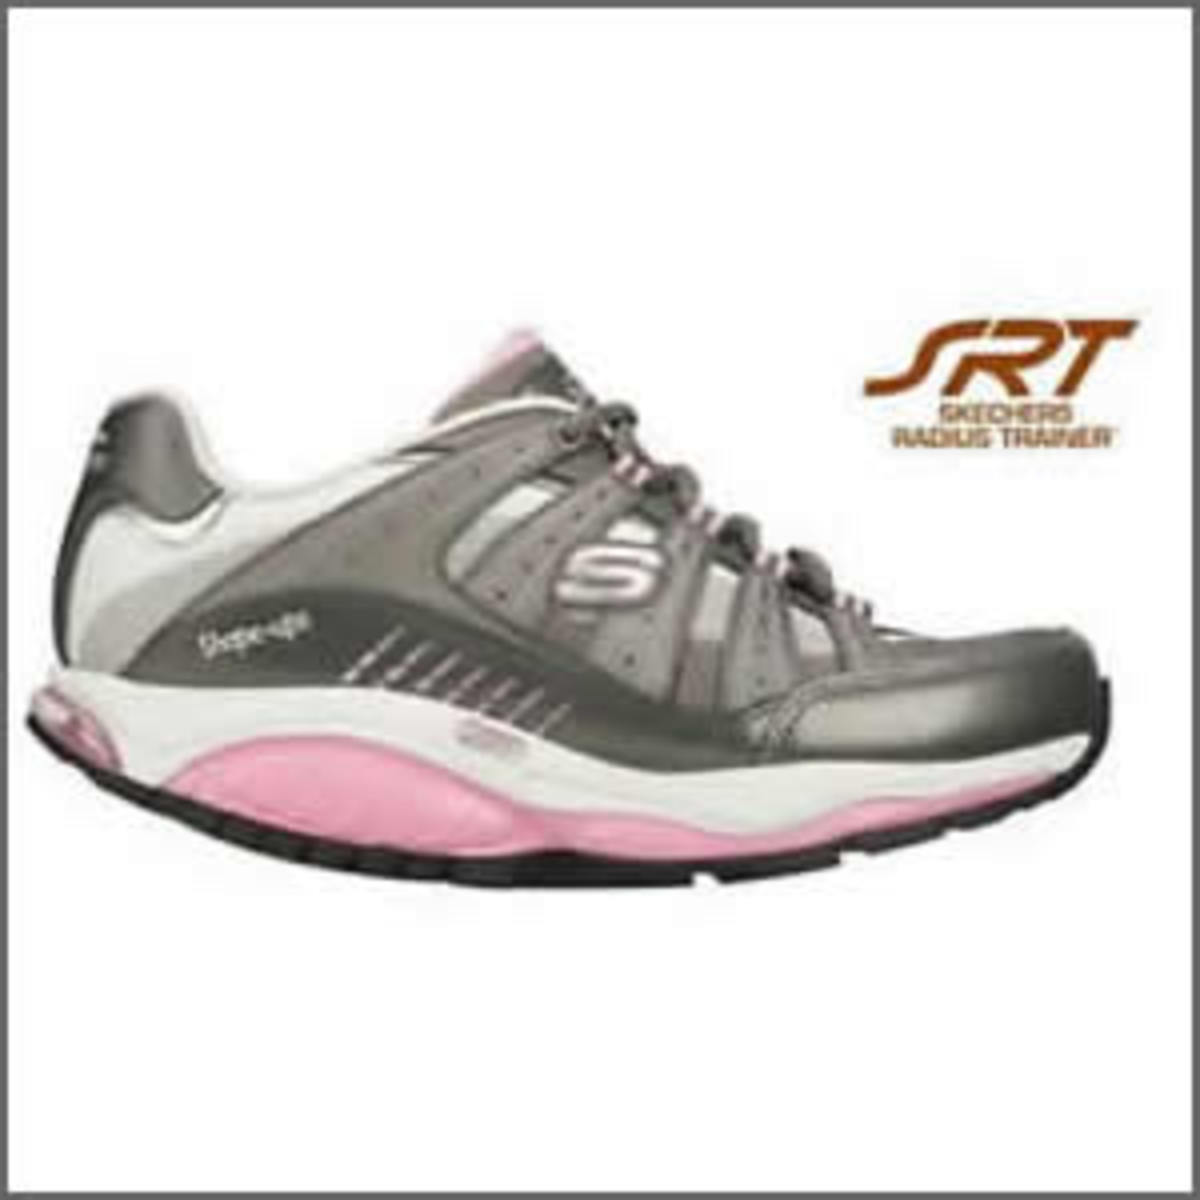 Skechers Shape Ups SRT Radius Trainer